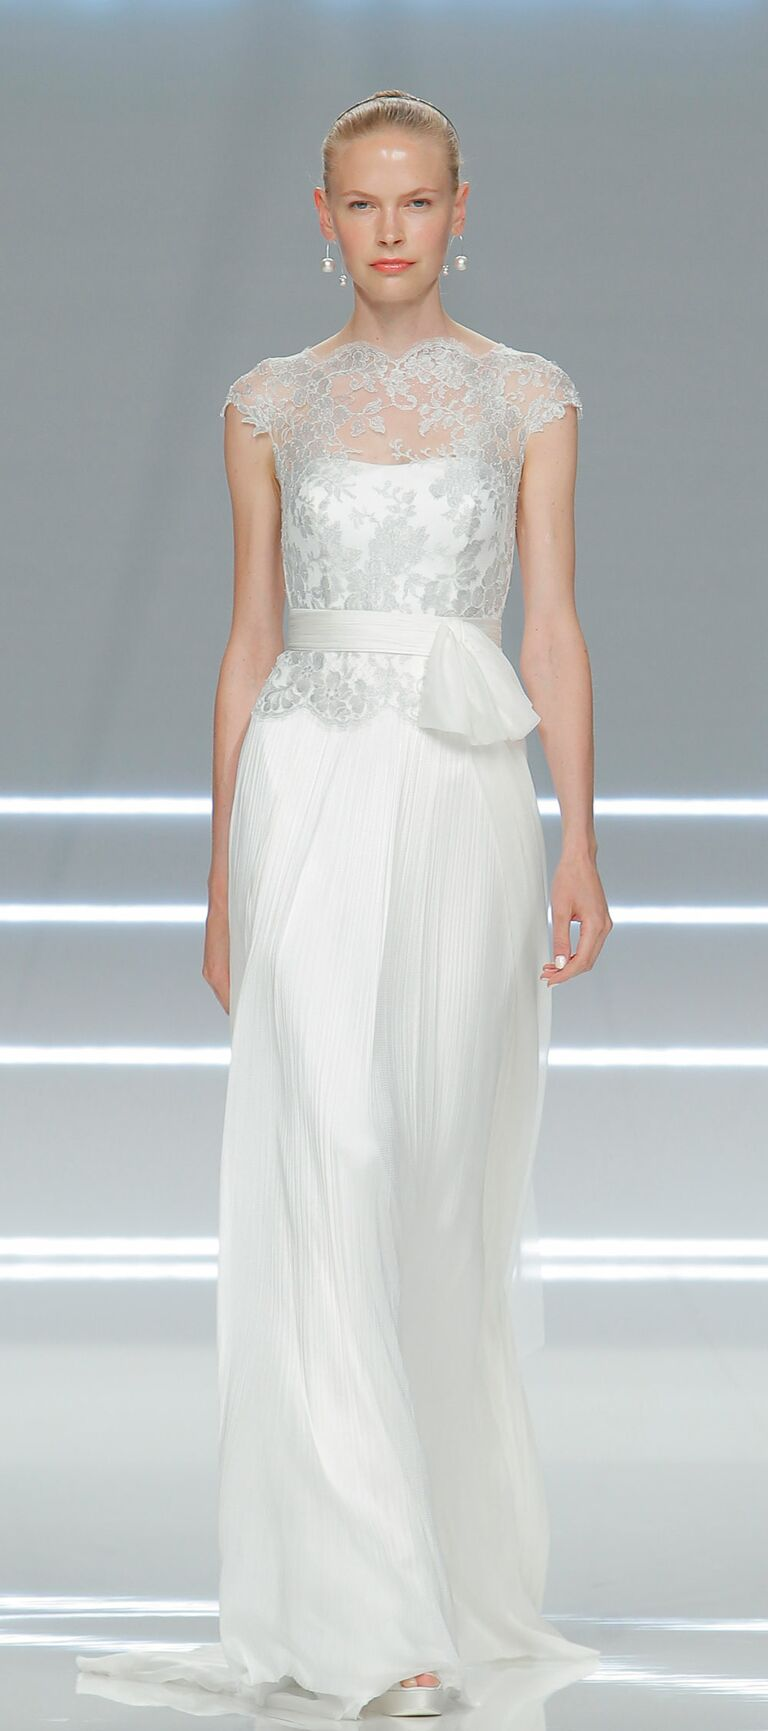 82aed06a423 Rosa Clará 2017 strapless wedding dress with silver lace shirt overlay and  sash